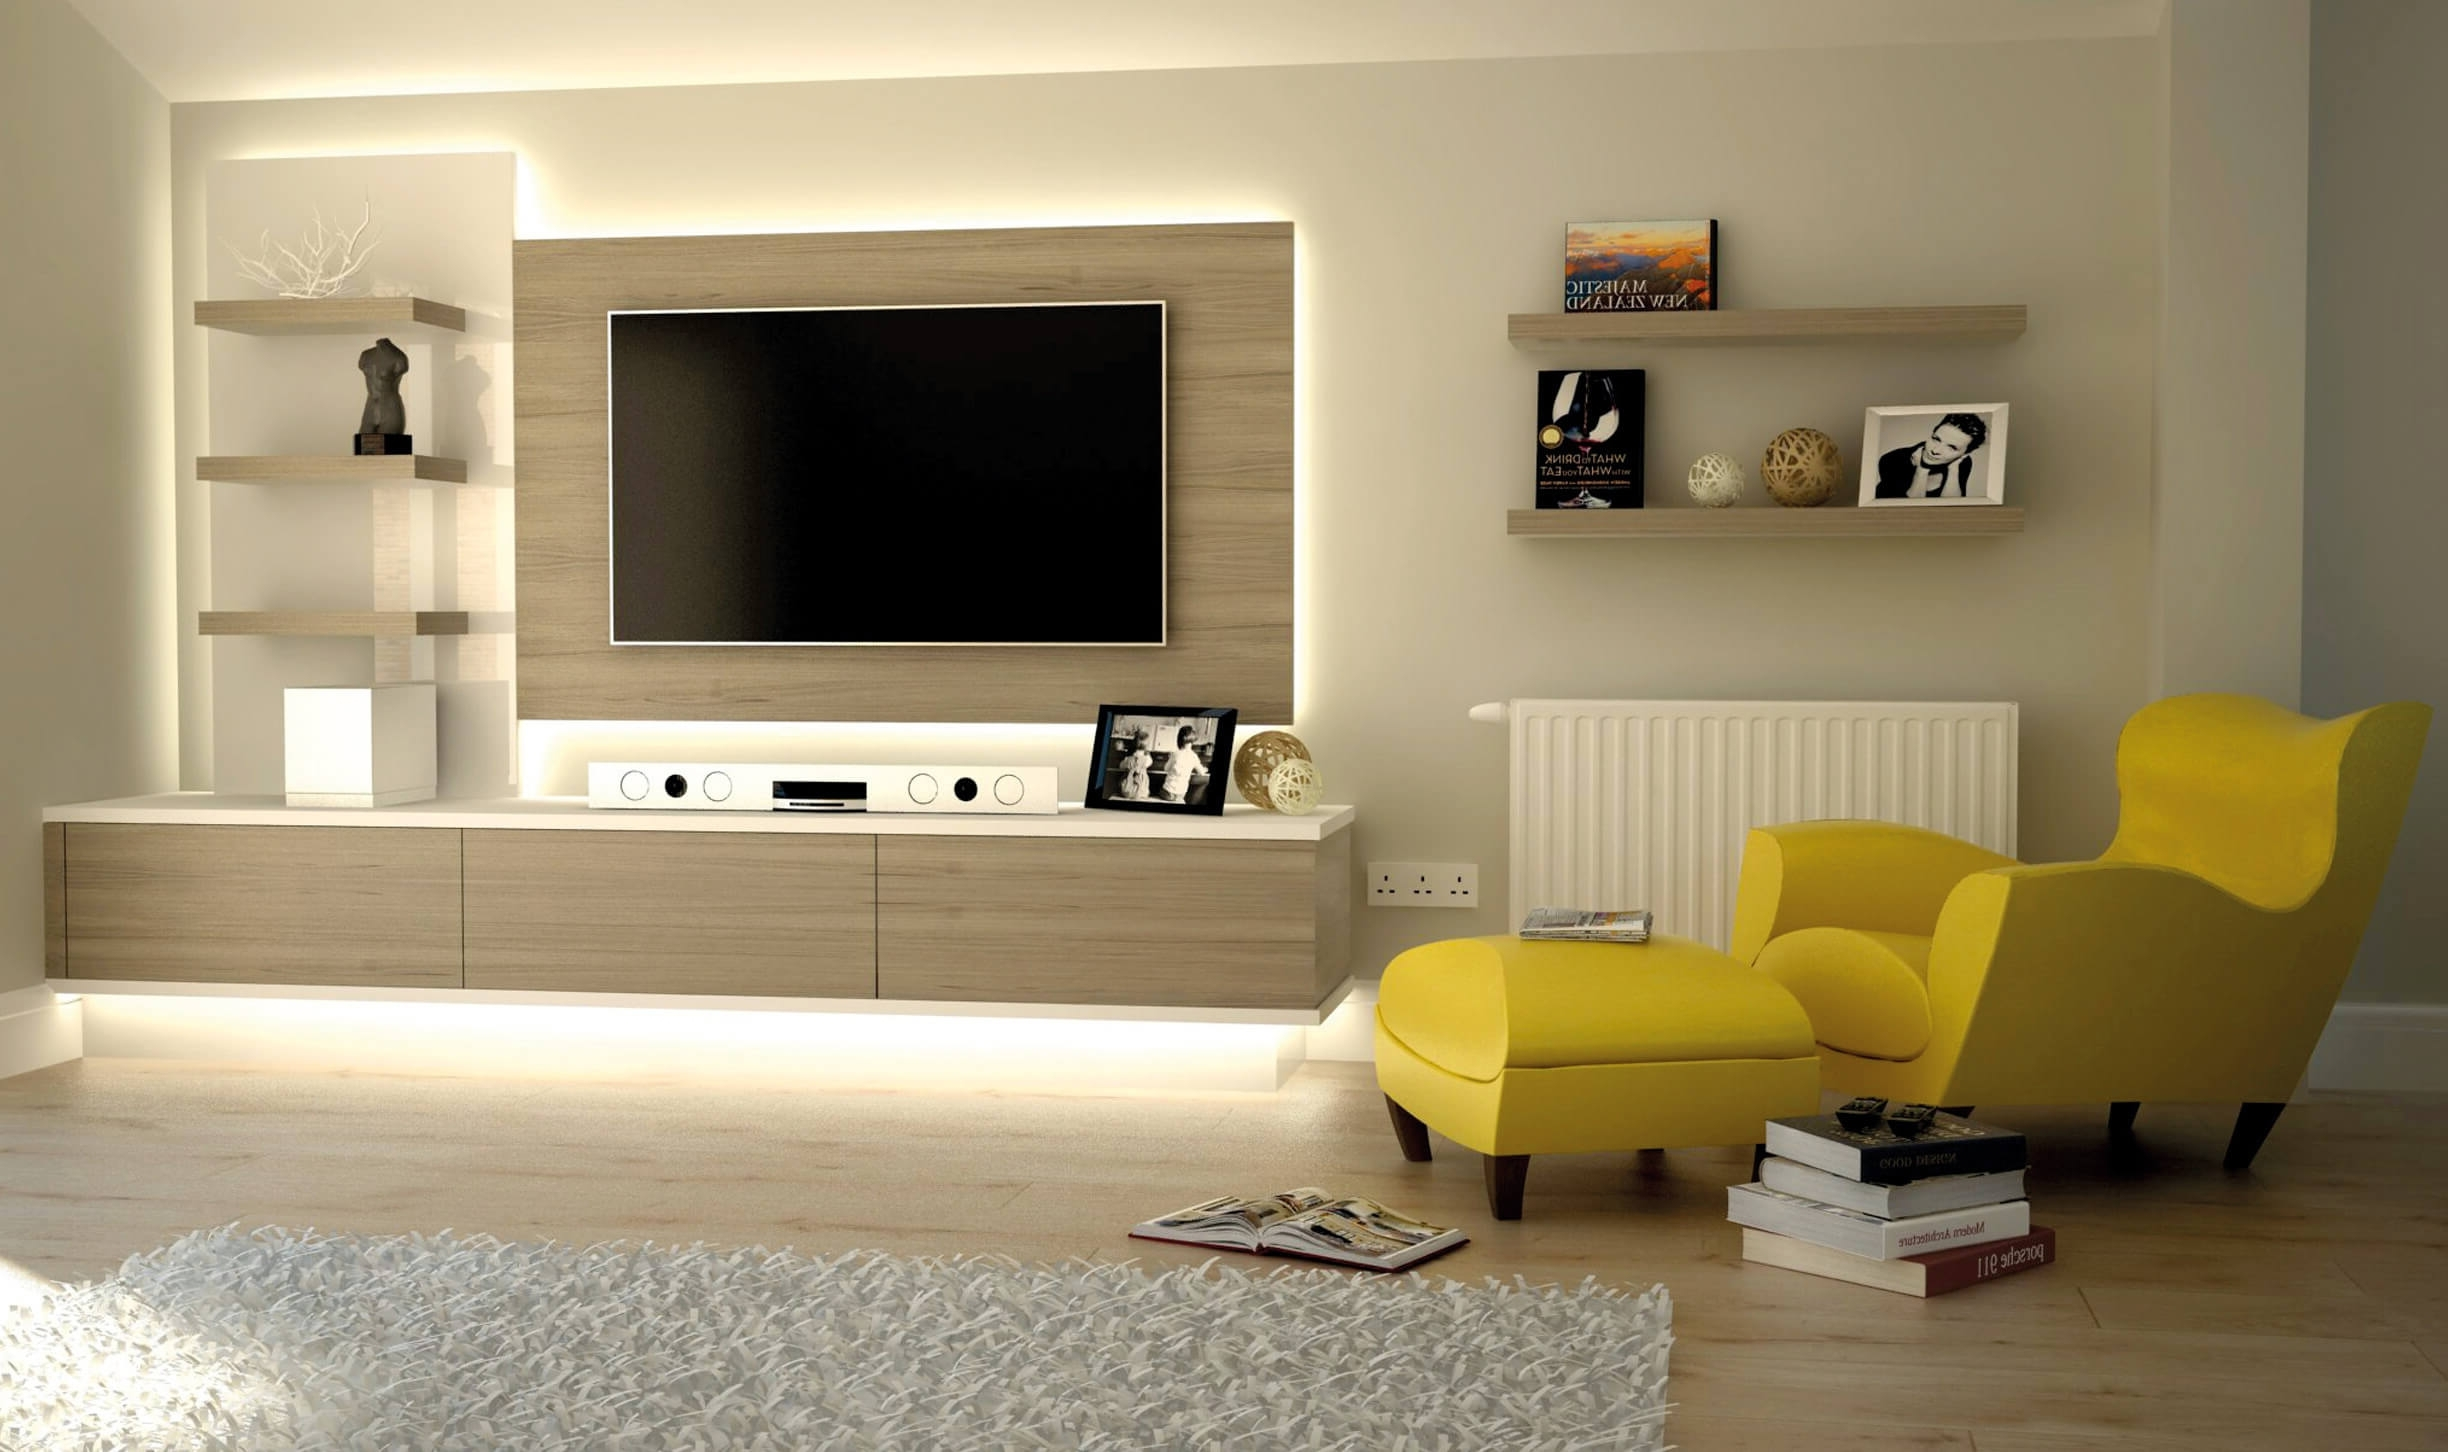 Bespoke Tv Cabinets Bookcases And Storage Units For Over Living Within Trendy Bespoke Tv Unit (View 6 of 15)